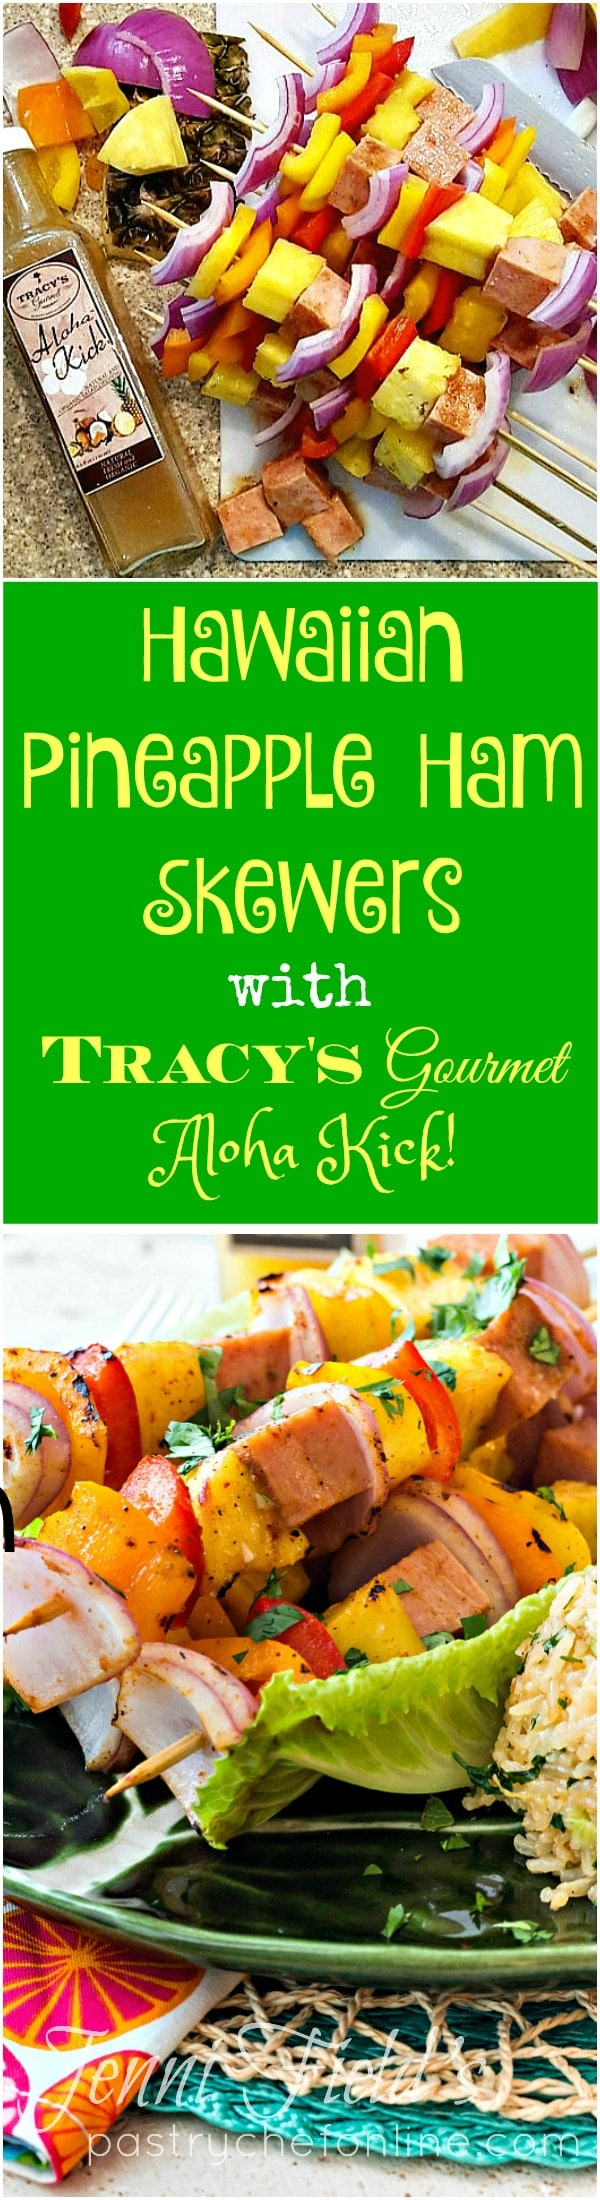 Bring the luau to your home with my Hawaiian Pineapple Ham Skewers with Sweet and Hot Pineapple Rice featuring Tracy's Gourmet Aloha Kick Dressing and Marinade! Kabobs are great either grilled or cooked inside on a grill pan, so it's always the right weather for this healthy and fun recipe! #sponsored | pastrychefonline.com